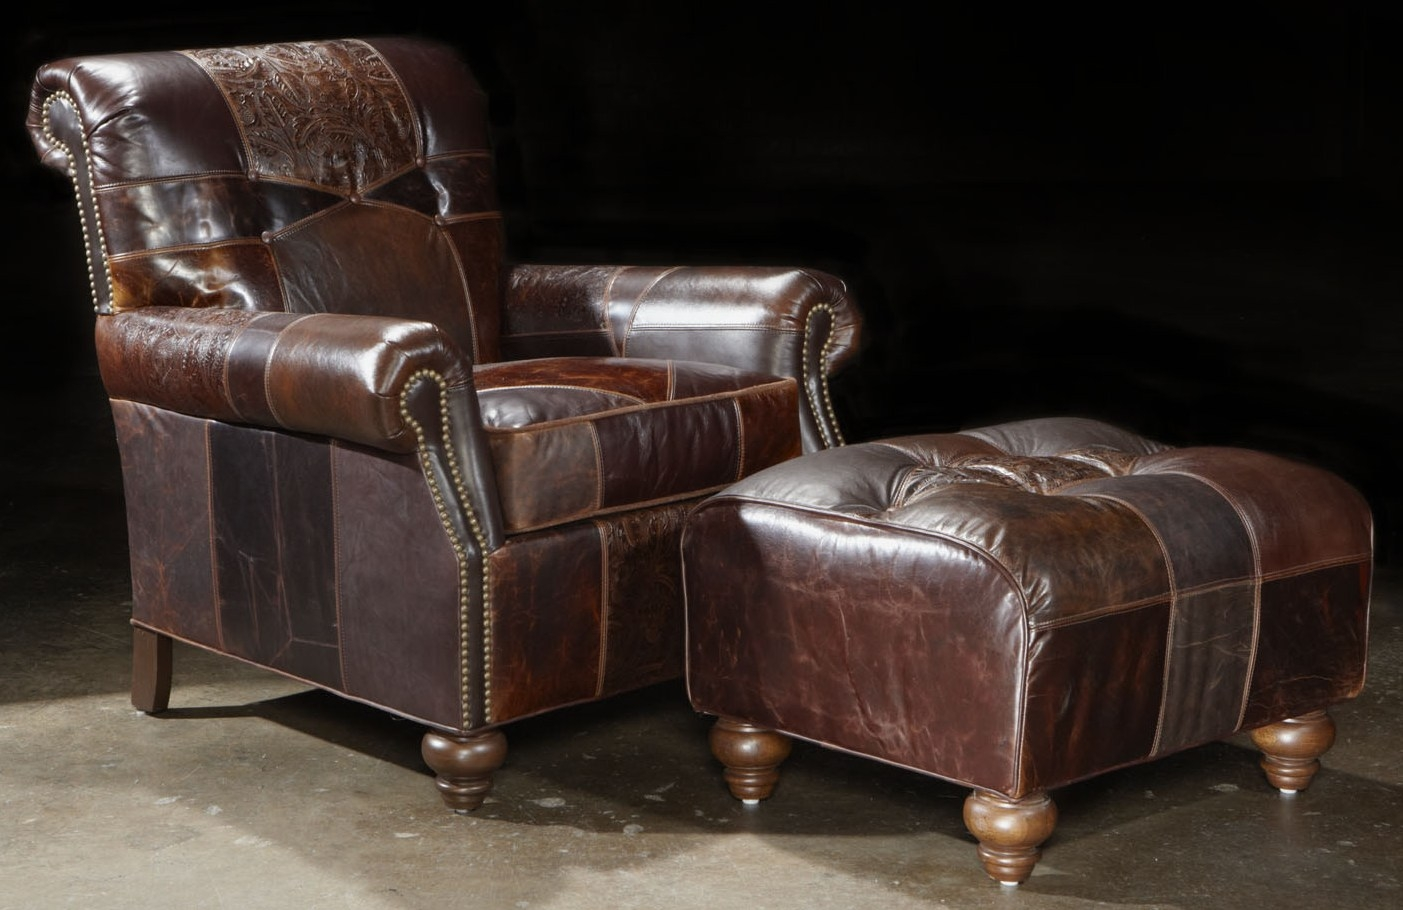 Furniture: Alluring Leather Chair And Ottoman For Cozy